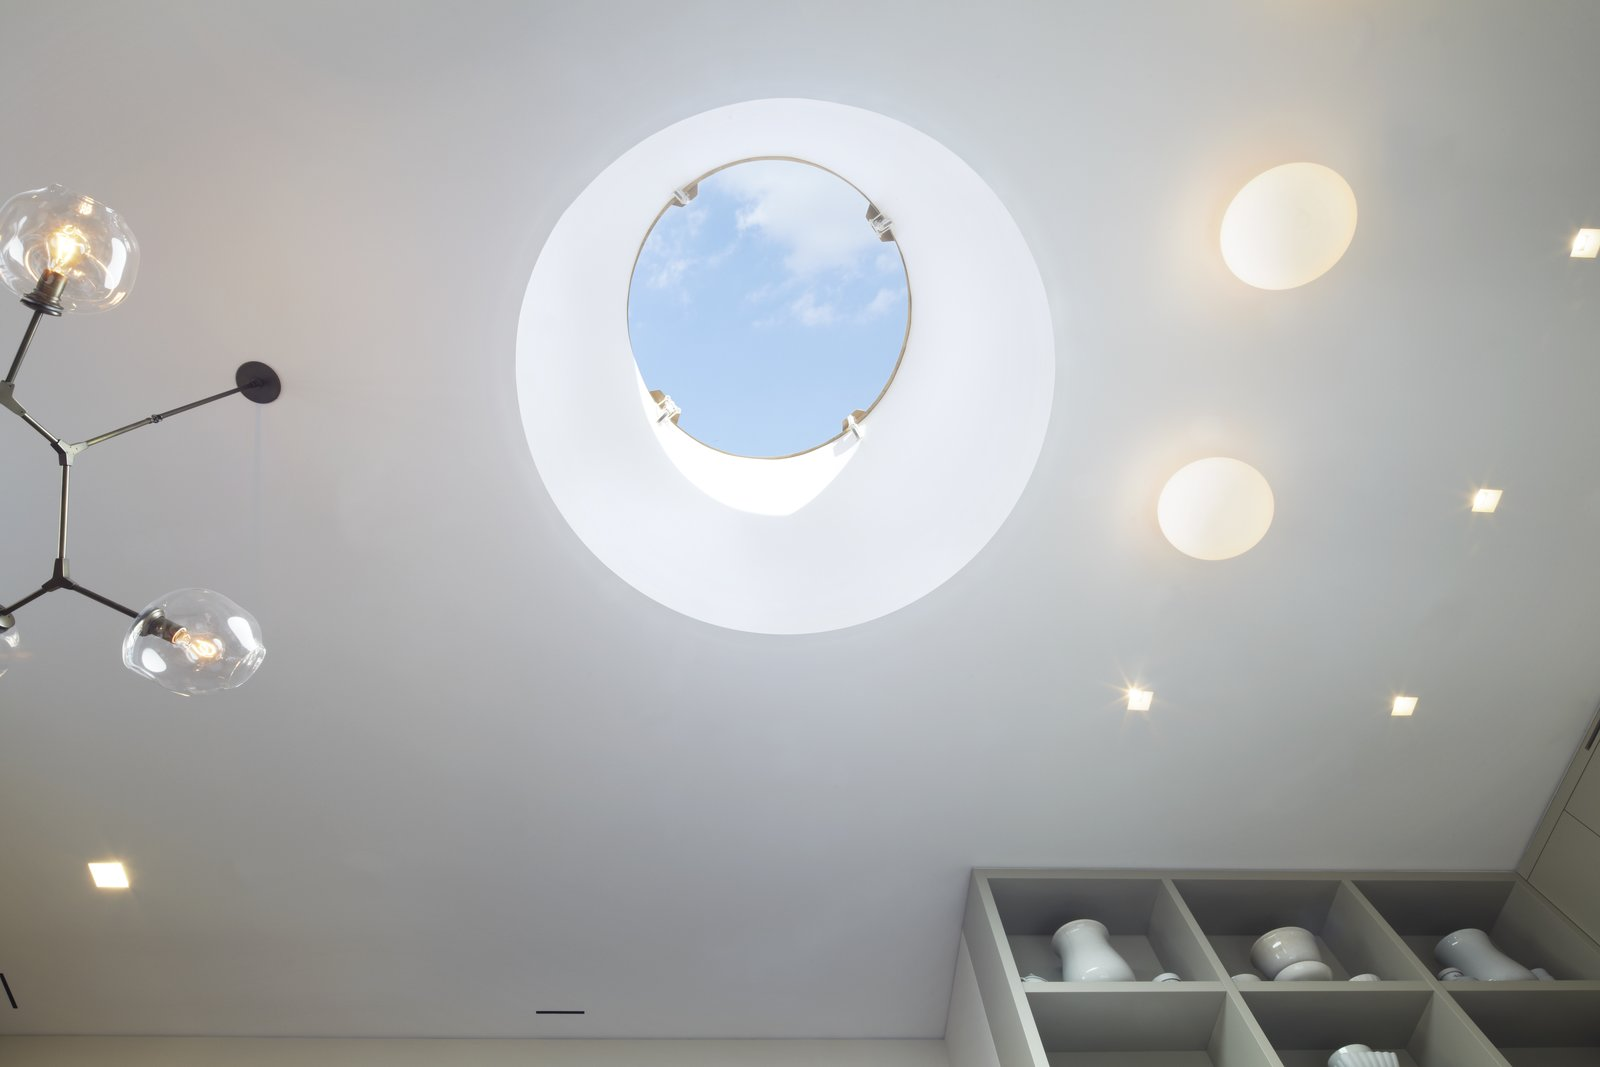 Looking up into the 5' wide drum skylight in the White Street Residence - remote controlled synchronized linear actuators open and close the skylight which allowed us to meet the NYC Code for legal light and air.  A beautiful Lindsey Adelman Branch chandelier is on the left and Flos Glo Ball fixtures paired with USAI Bevel trimless fixtures are on the right.  White Street Residence by pulltab